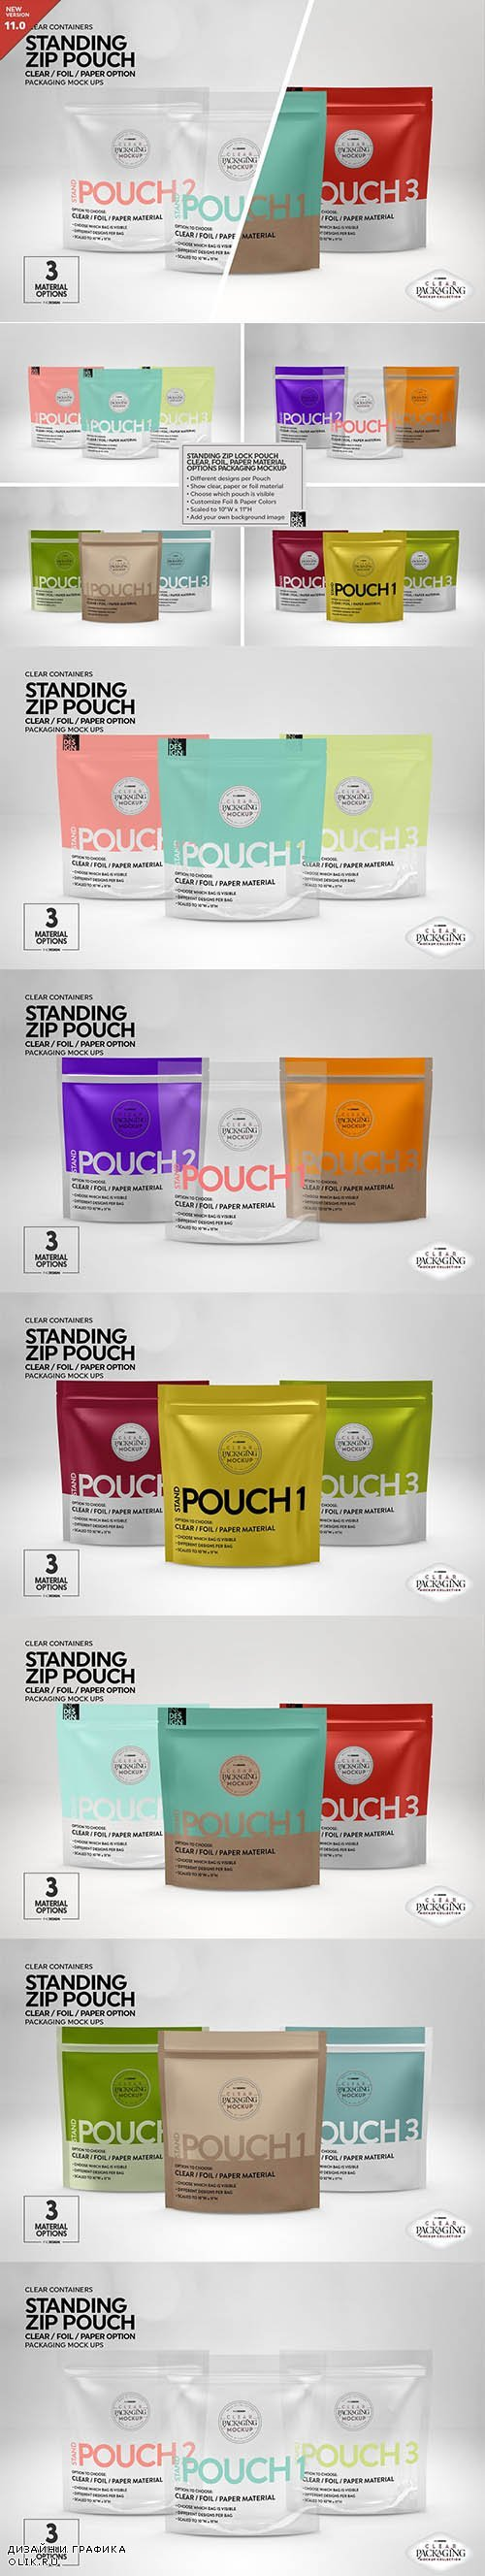 Clear Foil Paper Stand Pouch Mockup 4153739